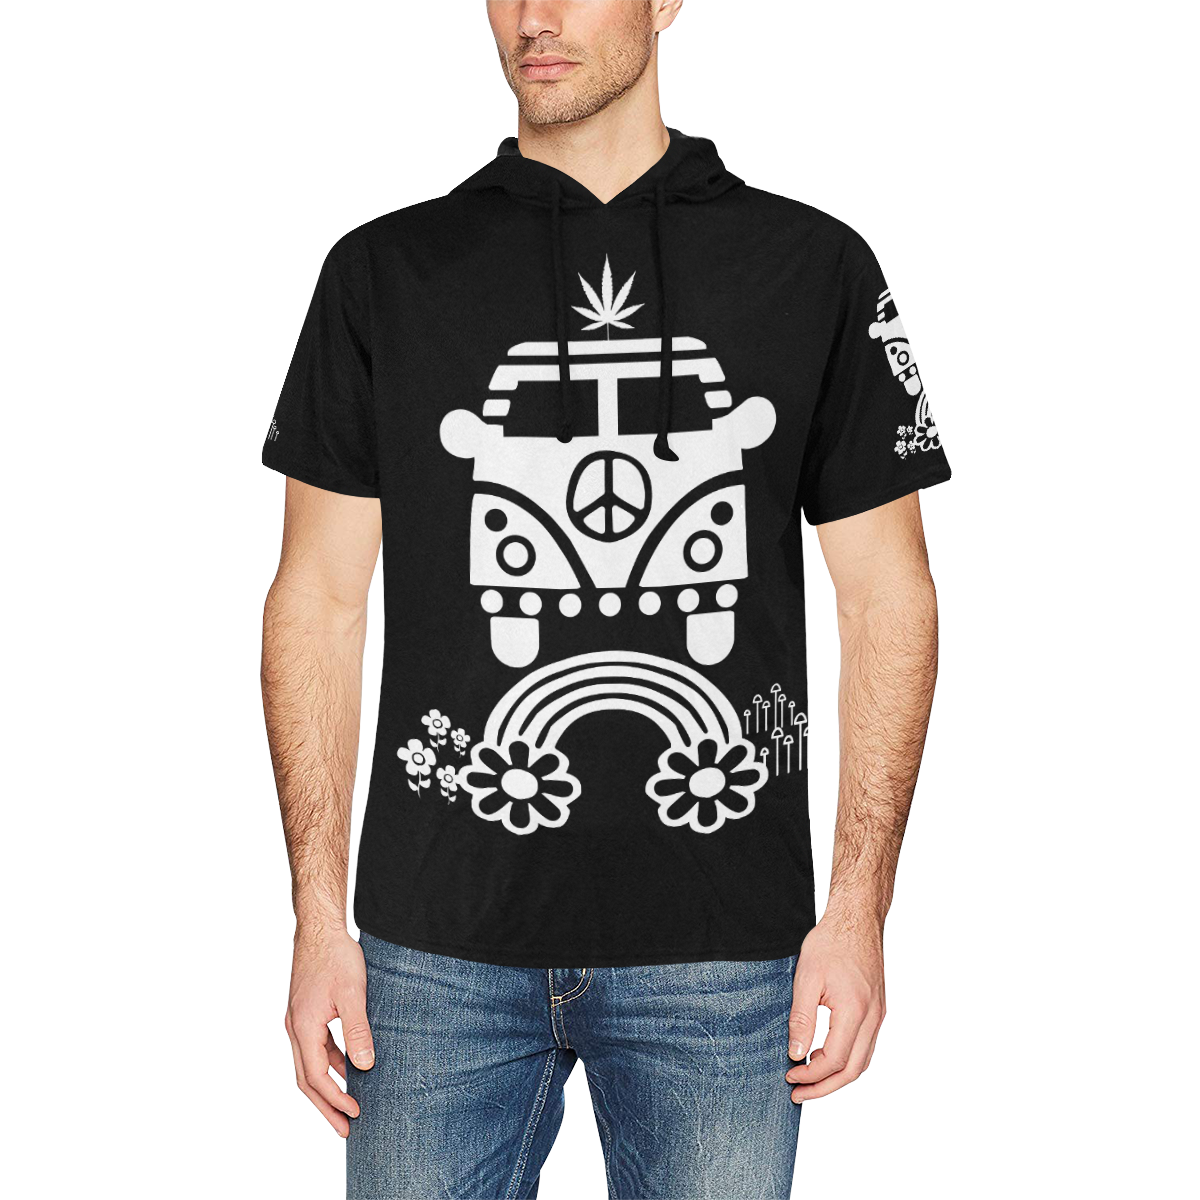 HIPPIE CANNABIS 70s 60s BLACK All Over Print Short Sleeve Hoodie for Men (Model H32)